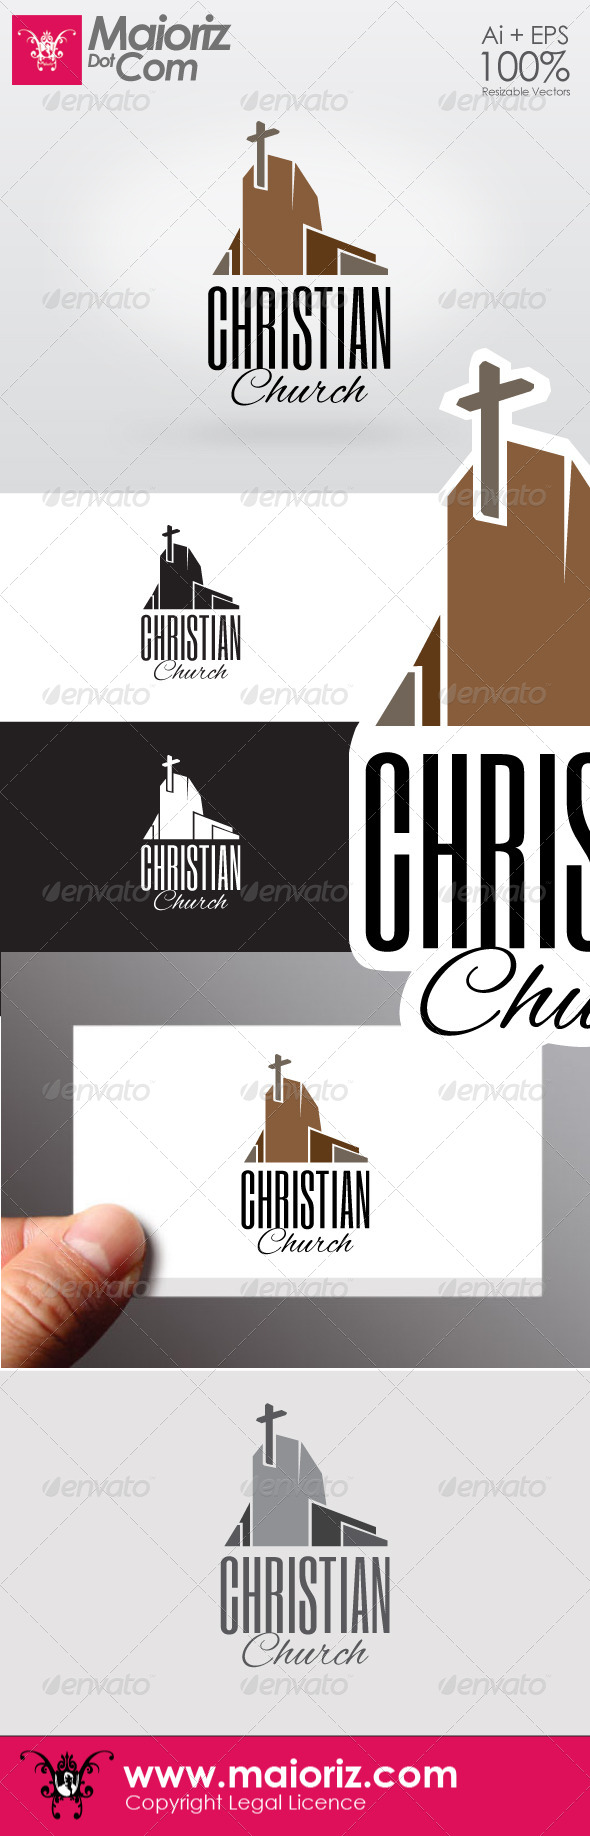 GraphicRiver Christian Chruch Logo 6537006